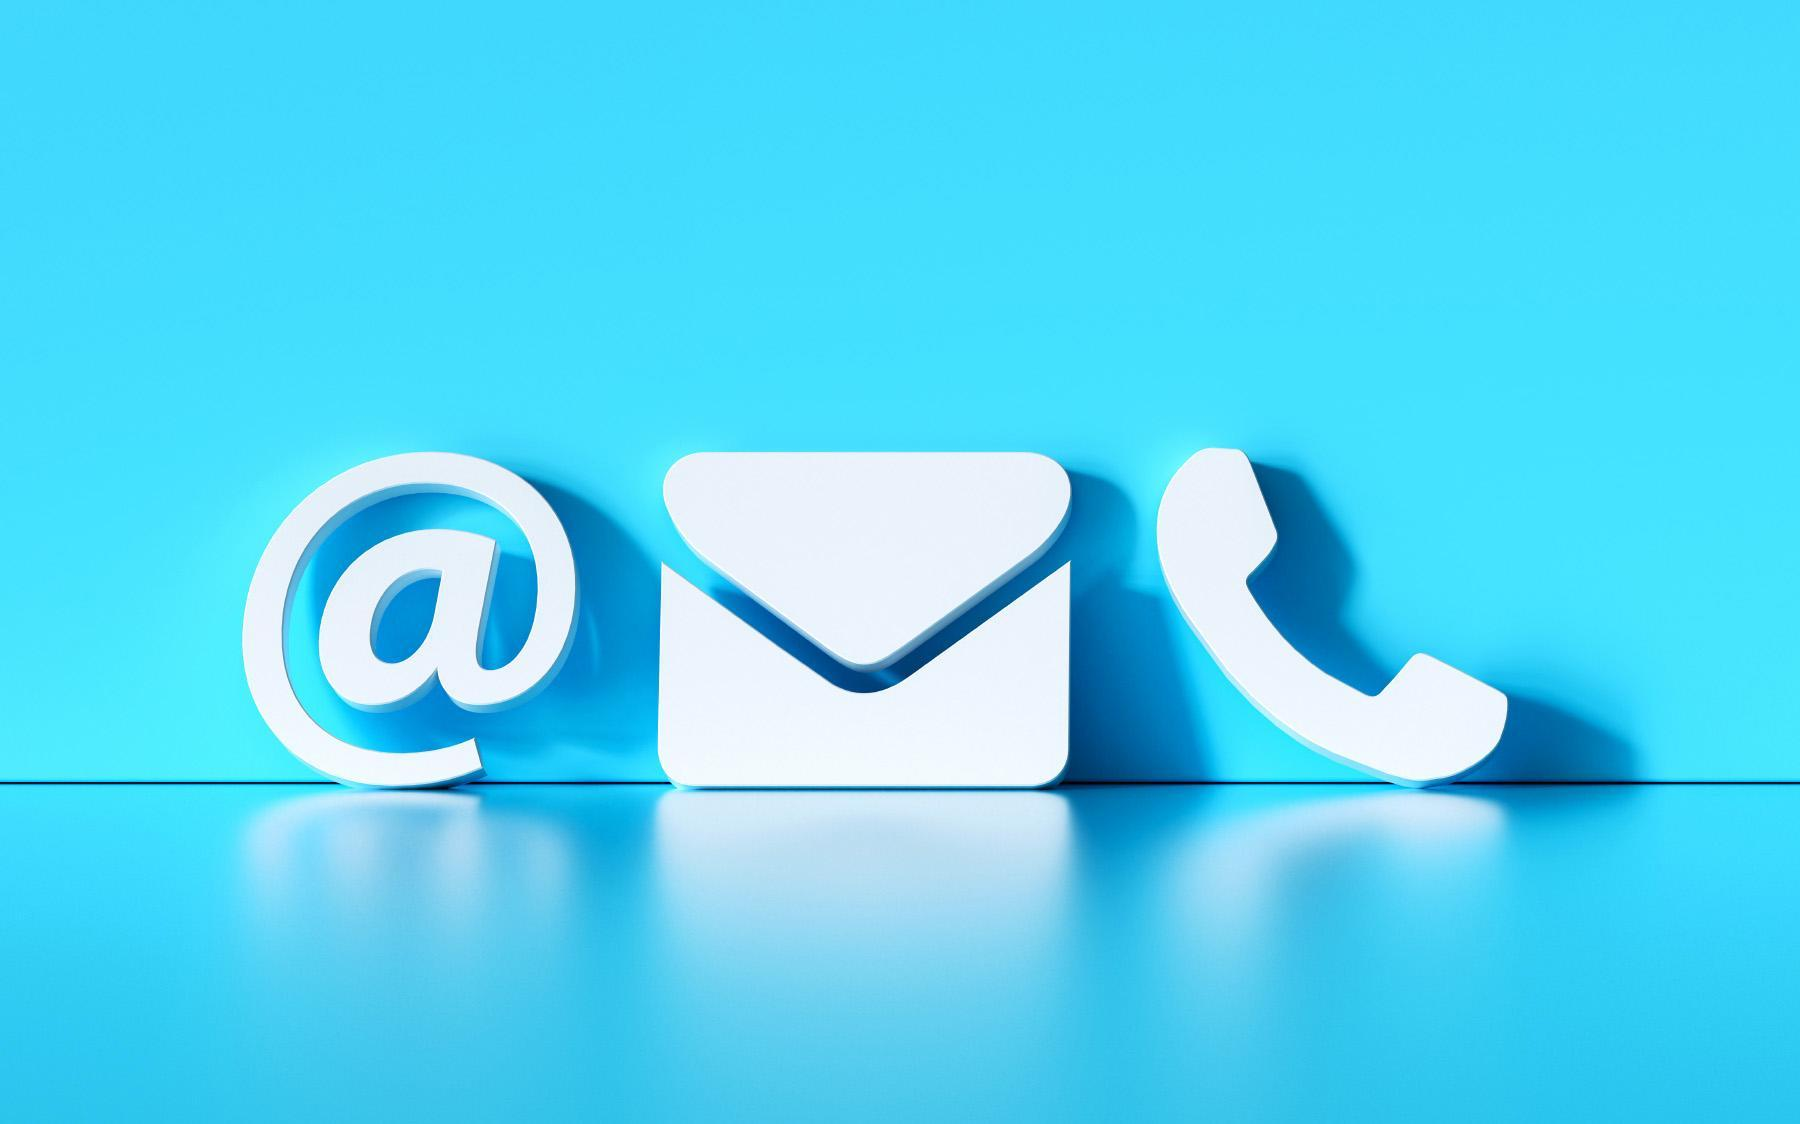 Email, letter, and phone icons against a blue background